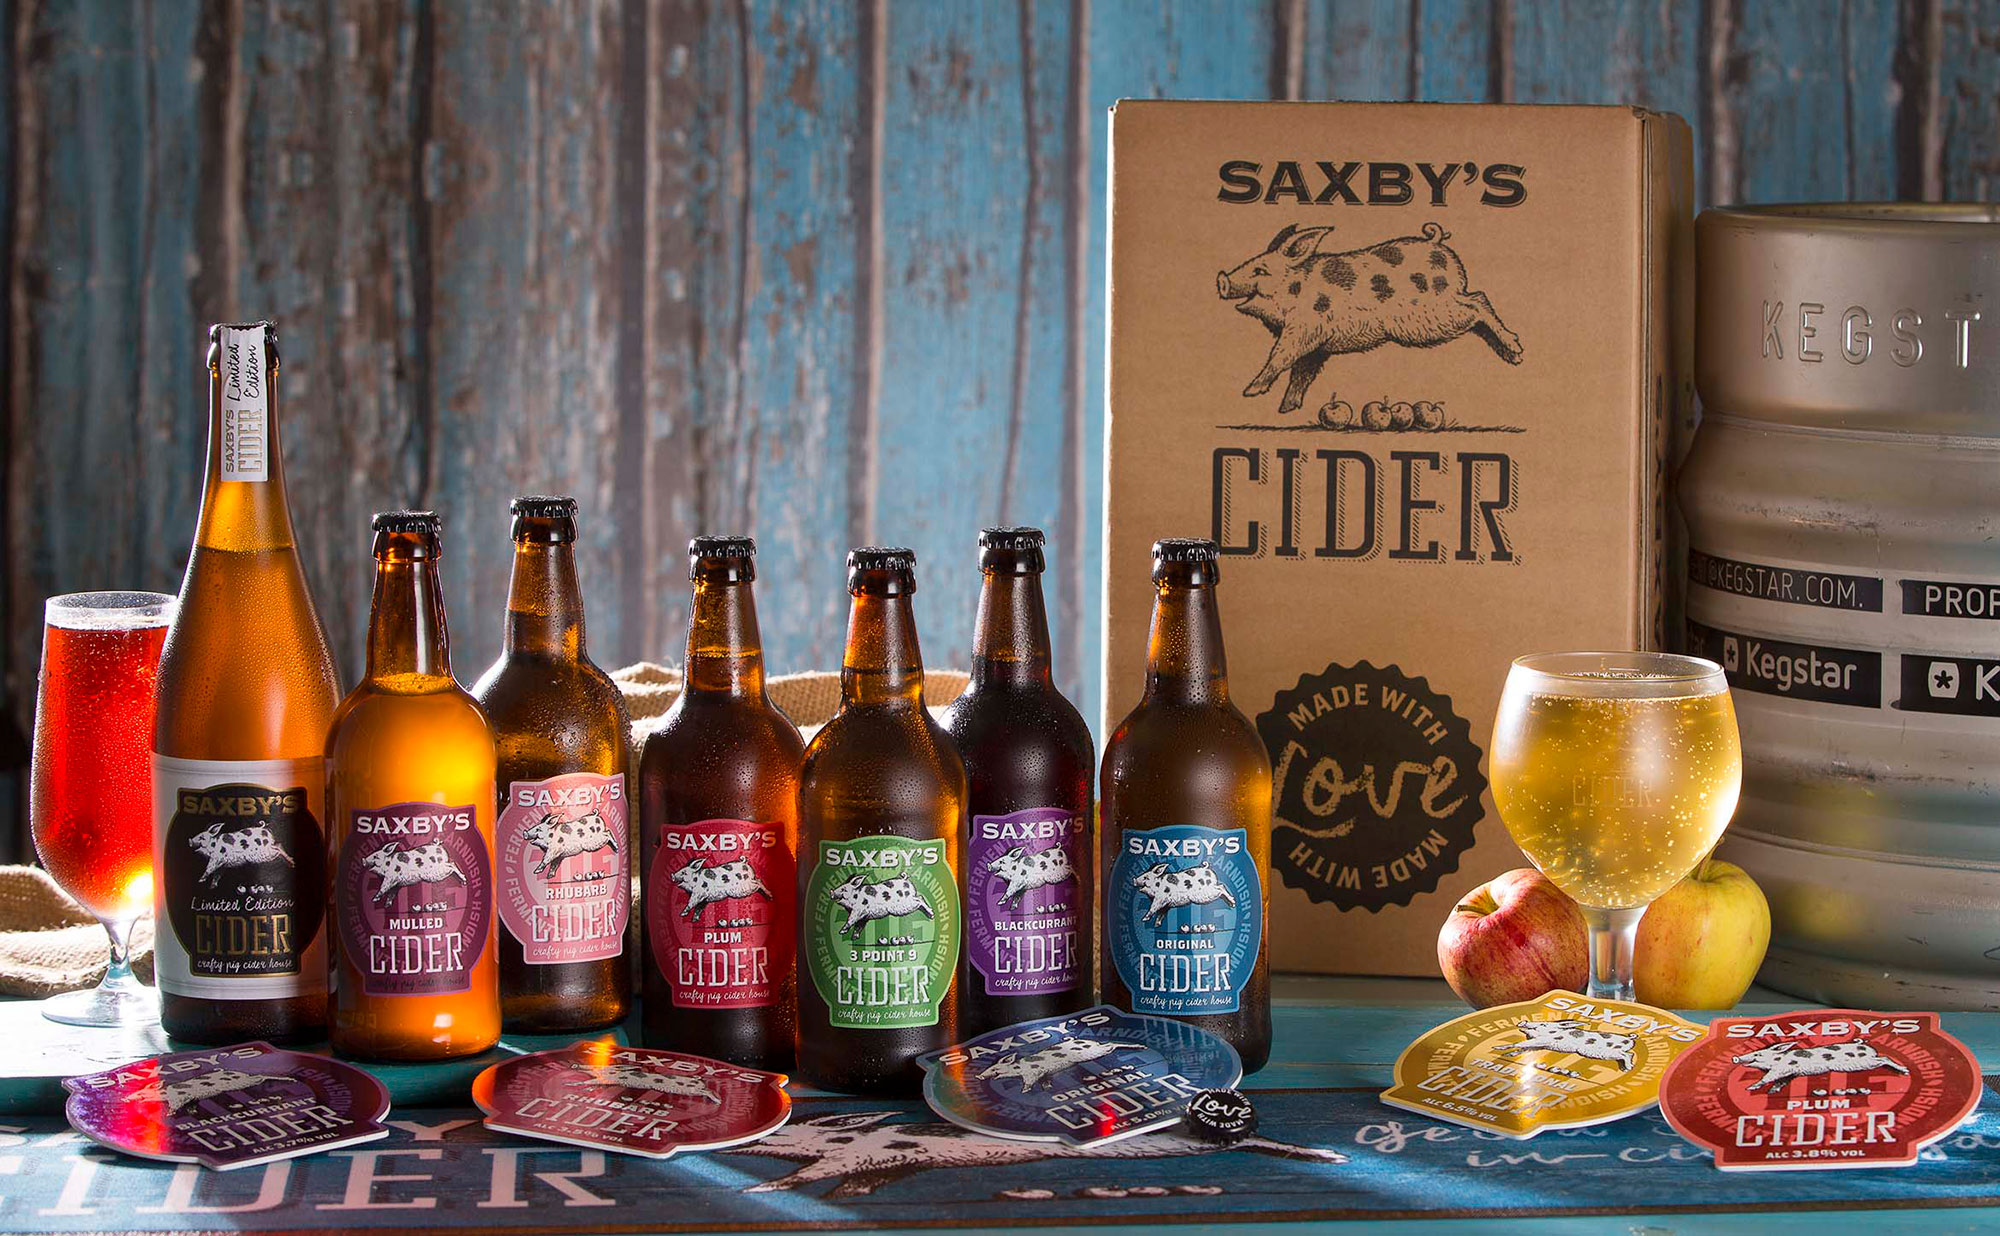 saxbys-cider-all-products.jpg